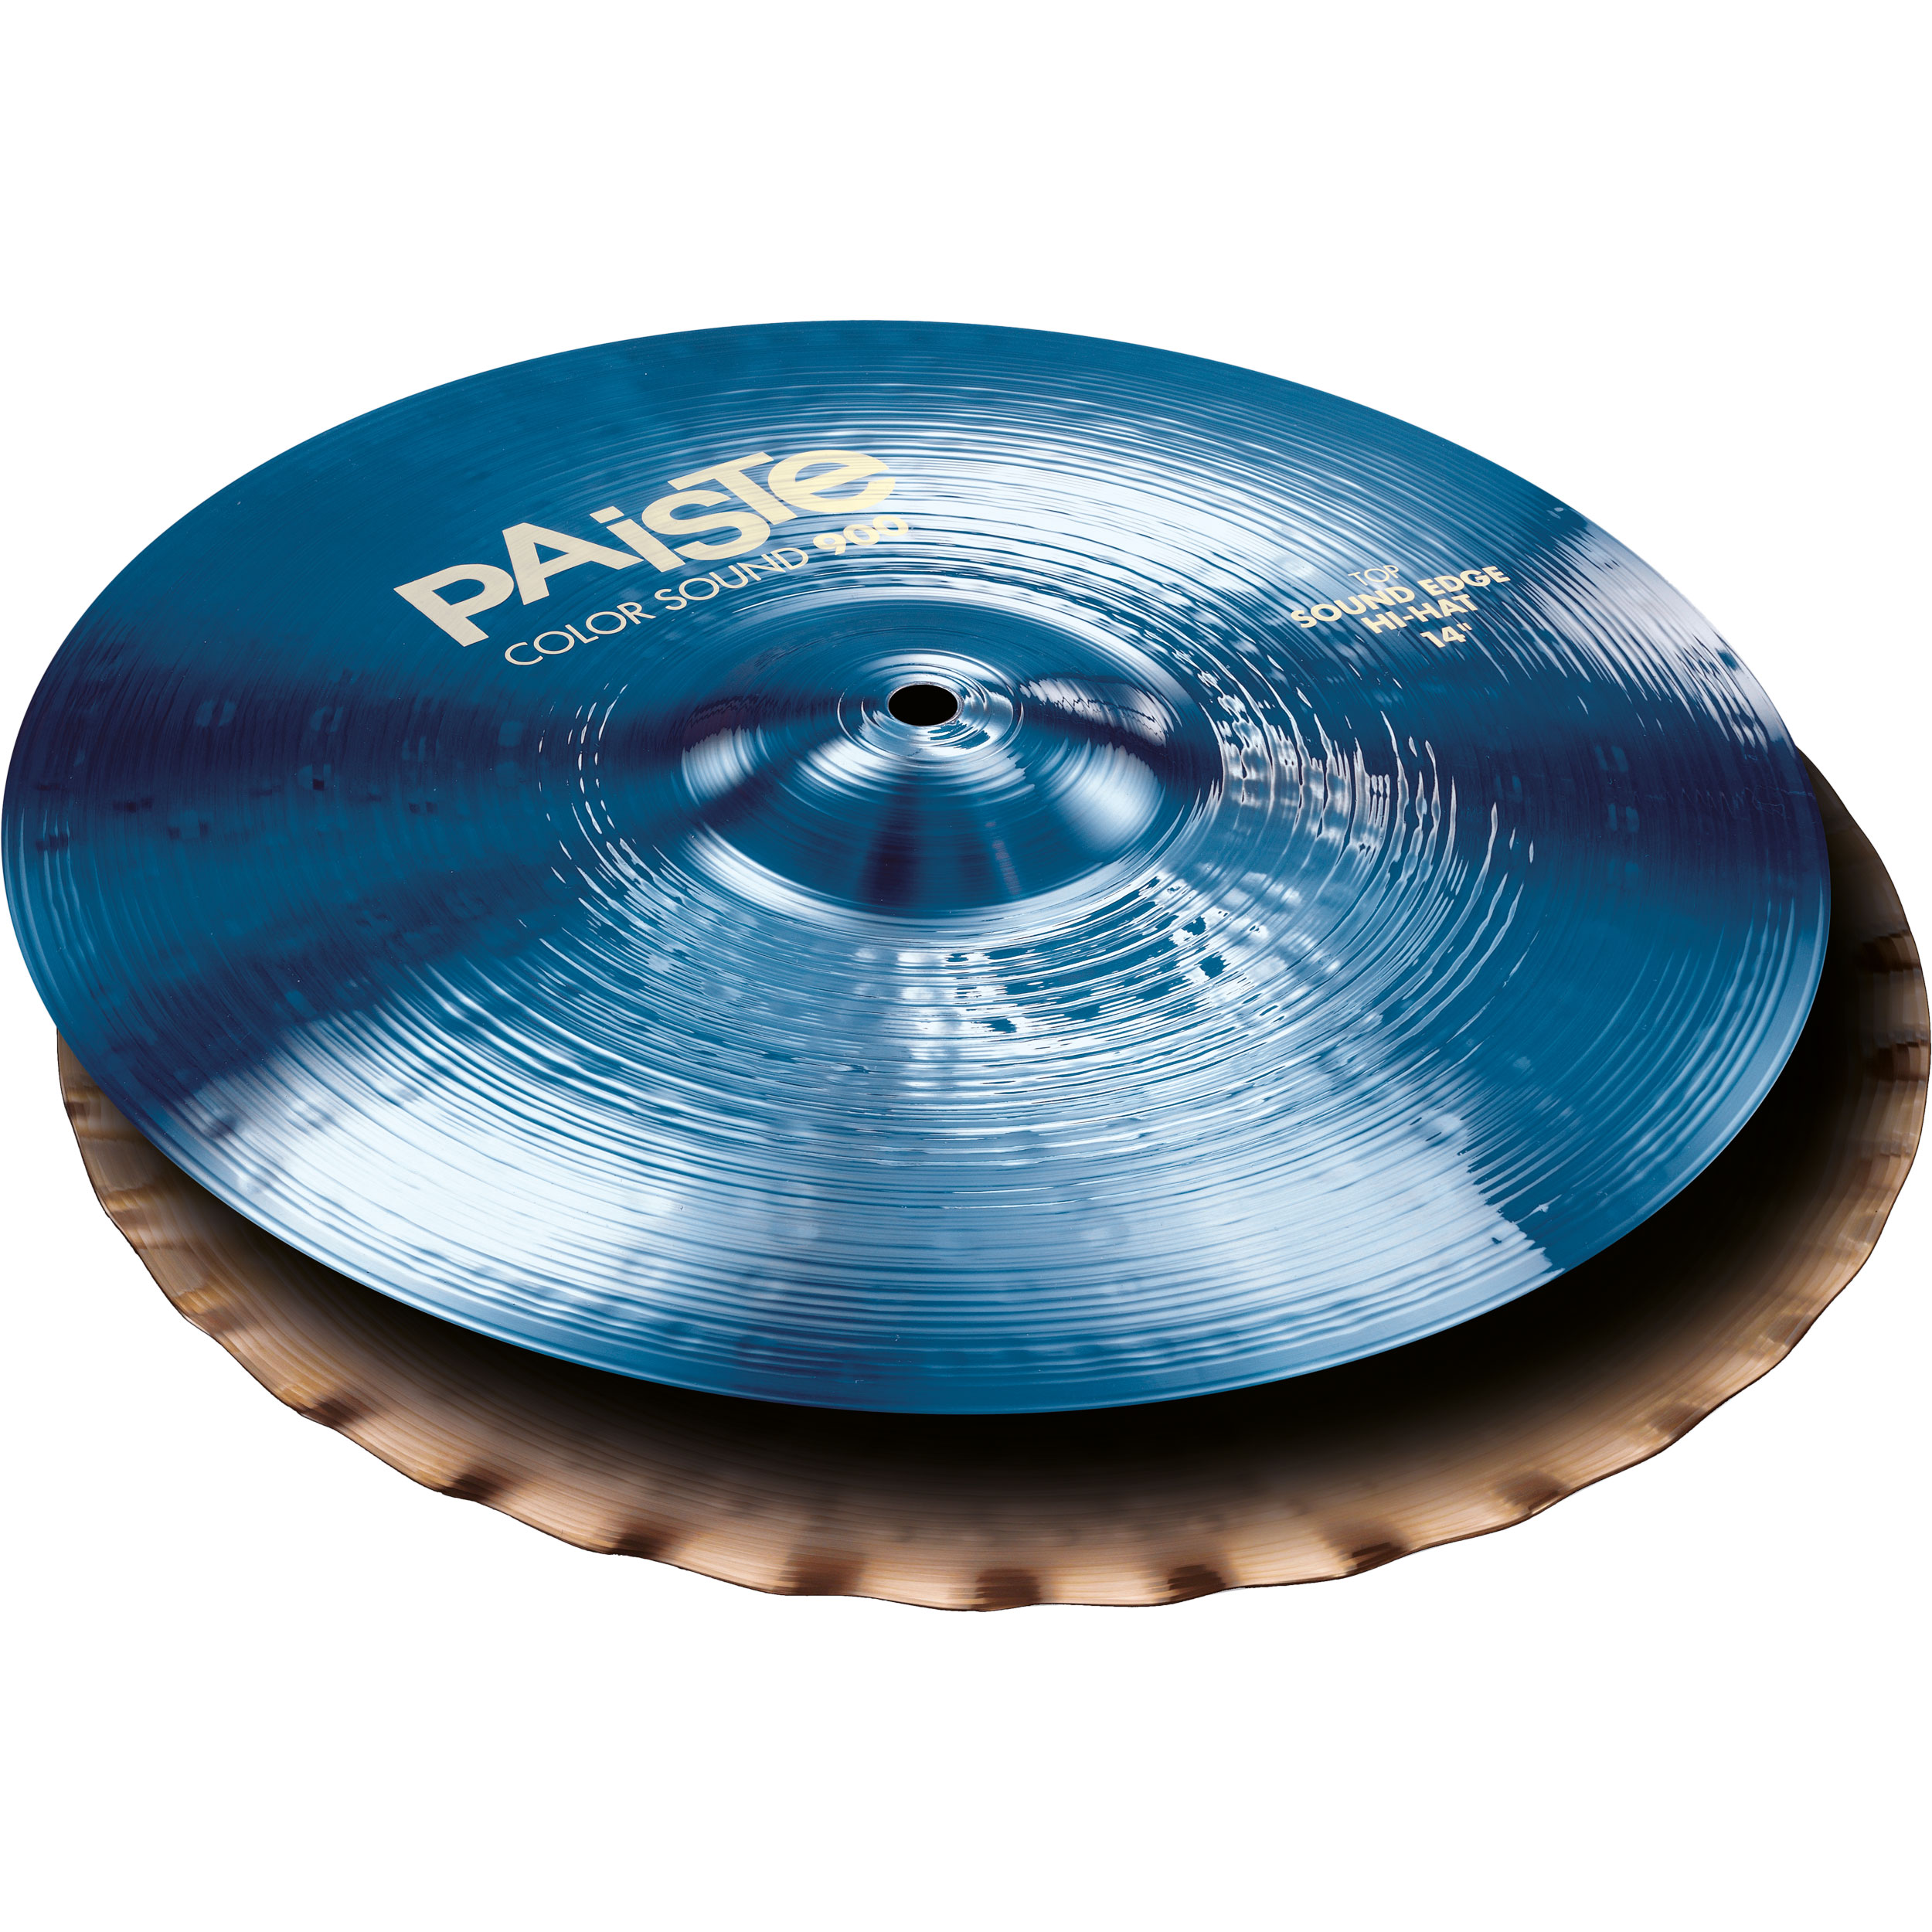 "Paiste 14"" Color Sound 900 Blue Sound Edge Hi Hat Cymbals"